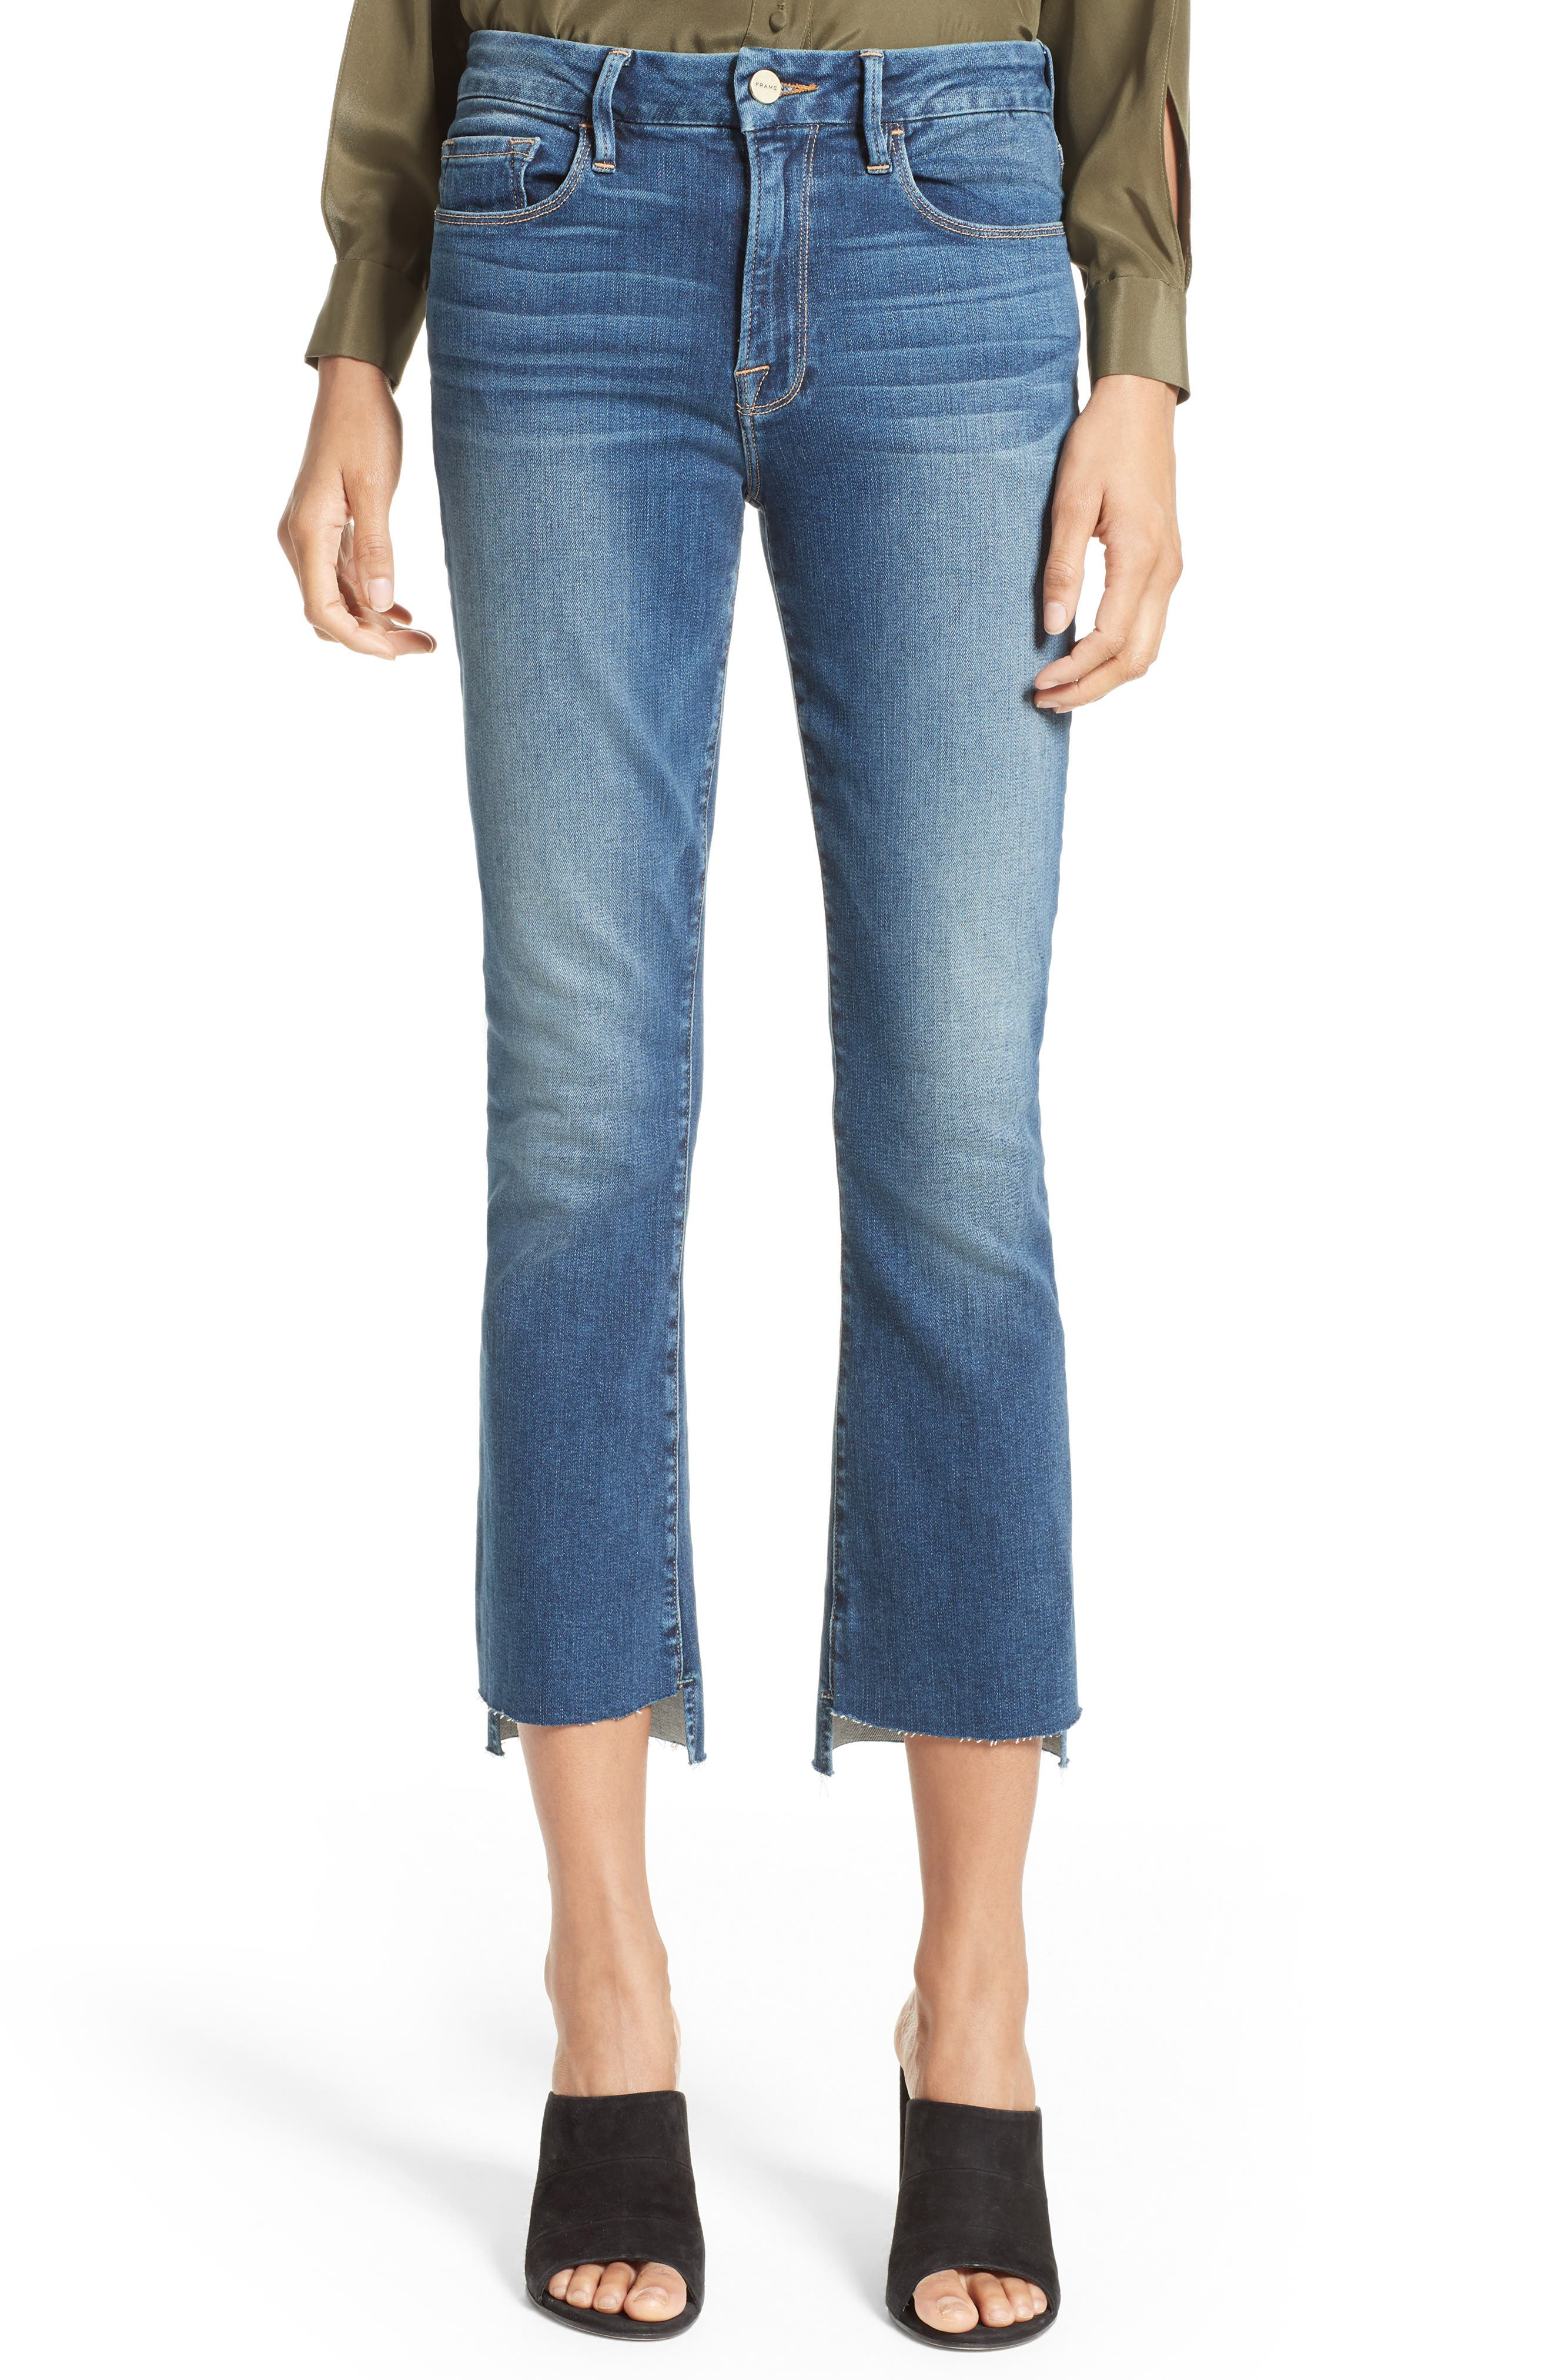 Alternate Image 1 Selected - FRAME Le Crop Mini Boot Stagger Hem Jeans (Clifton) (Nordstrom Exclusive)